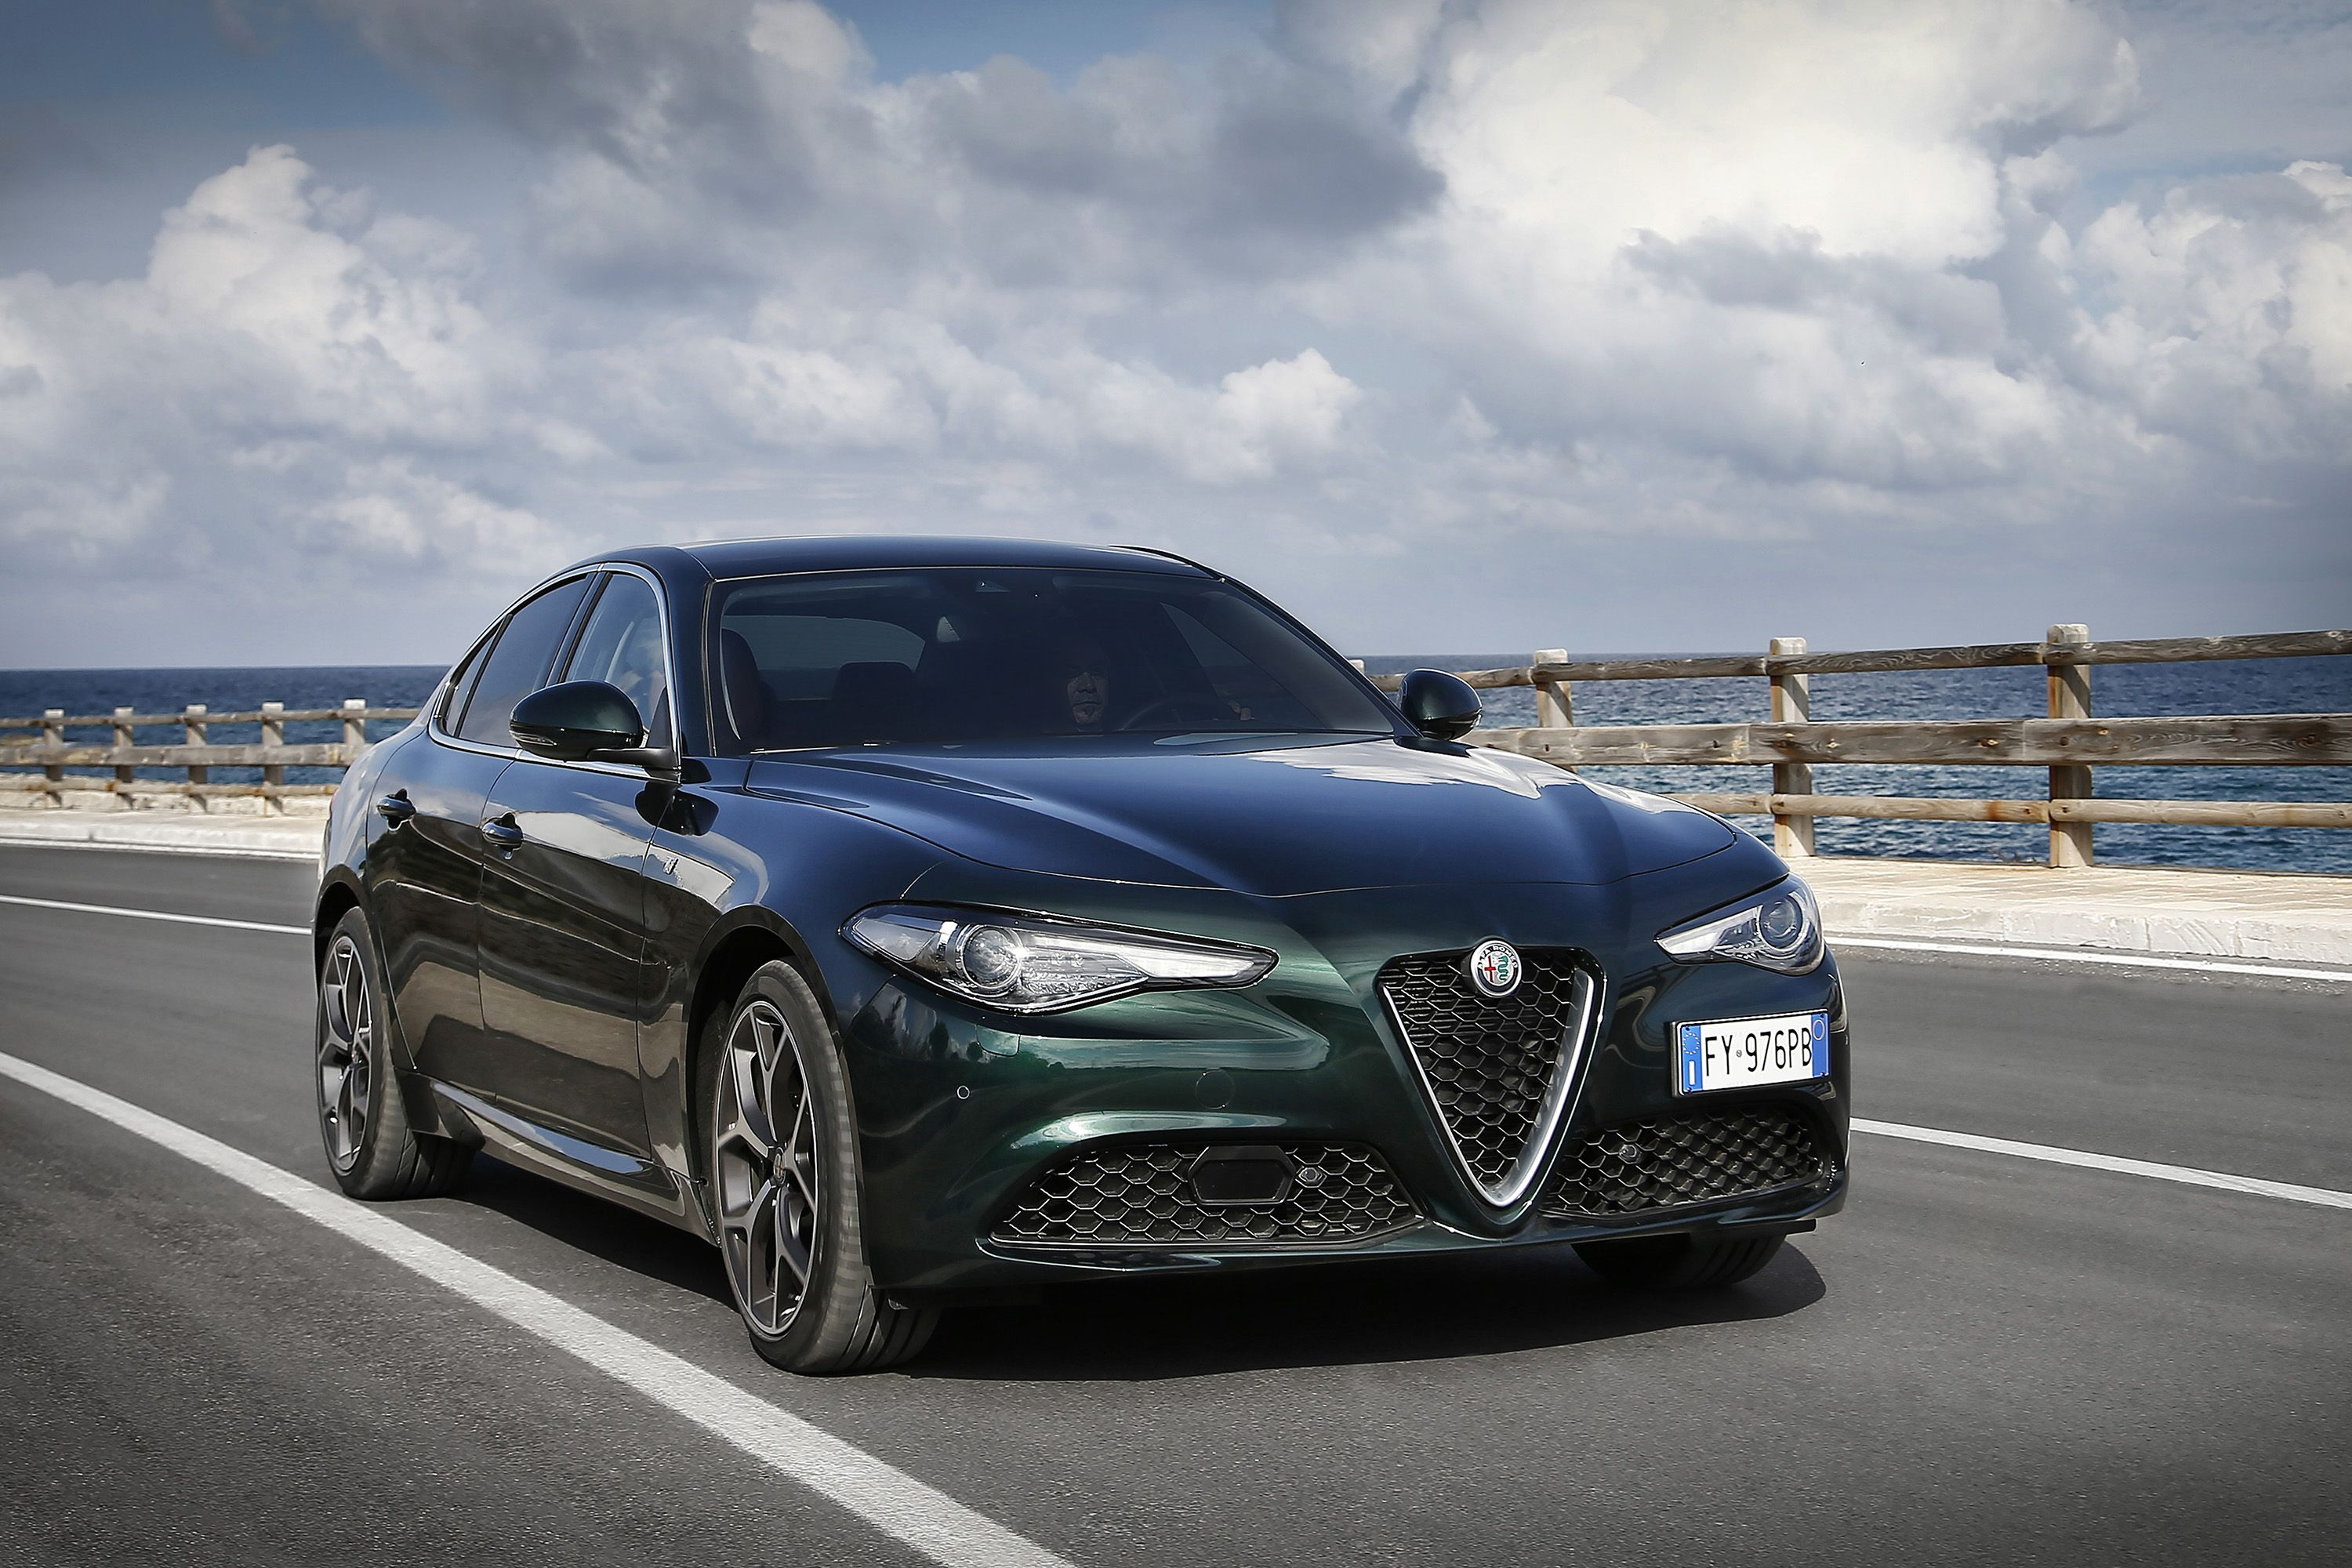 2020 Alfa Romeo Giulia Review Pricing